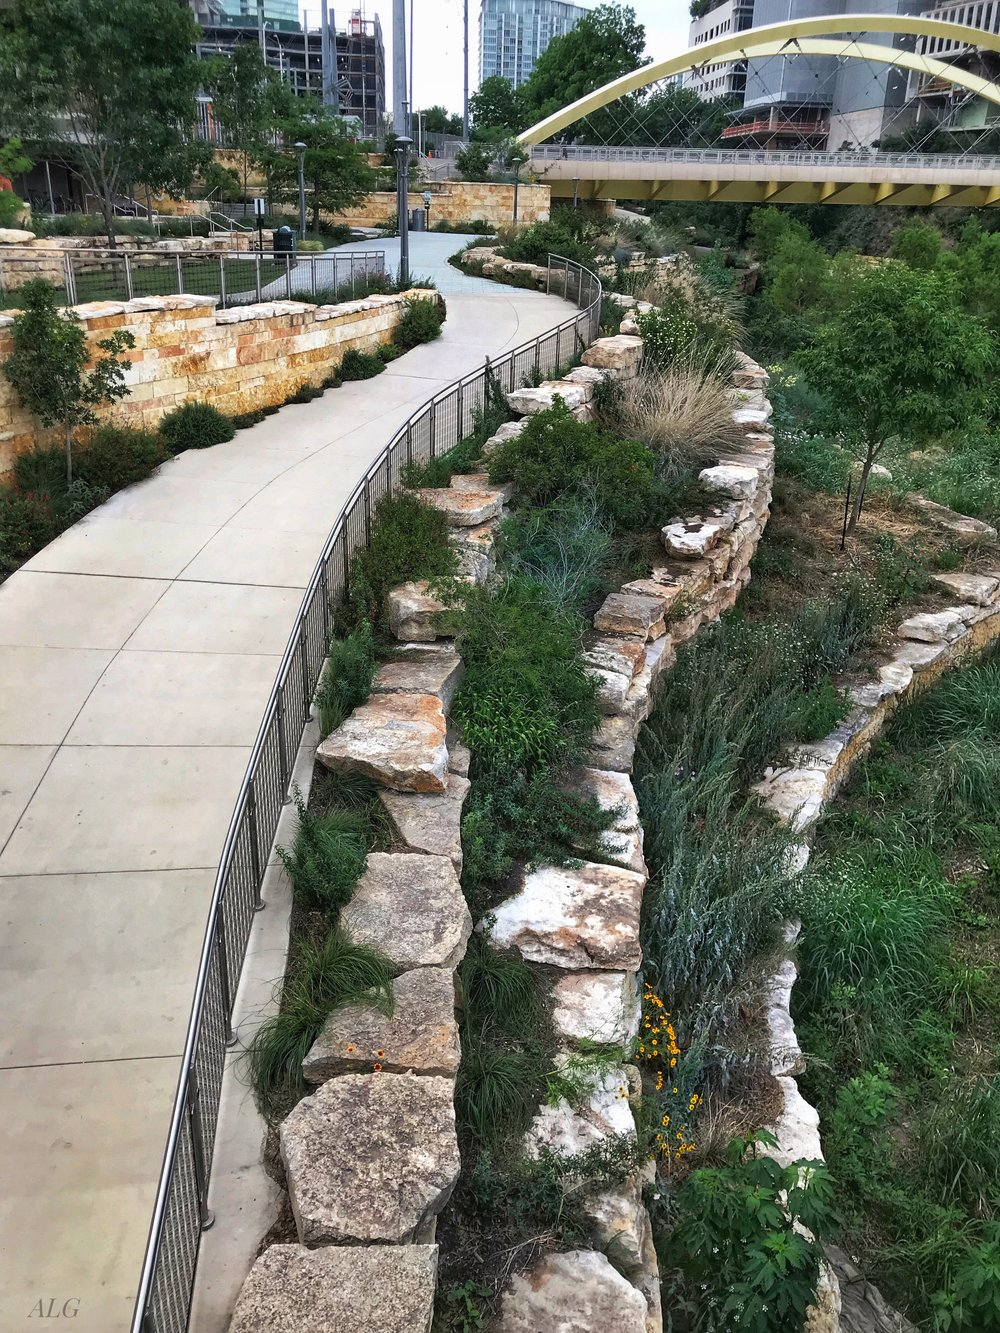 Adjacent to Austin Central Library (to the left of this photo) are Shoal Creek Trail and the Second Street bridge.